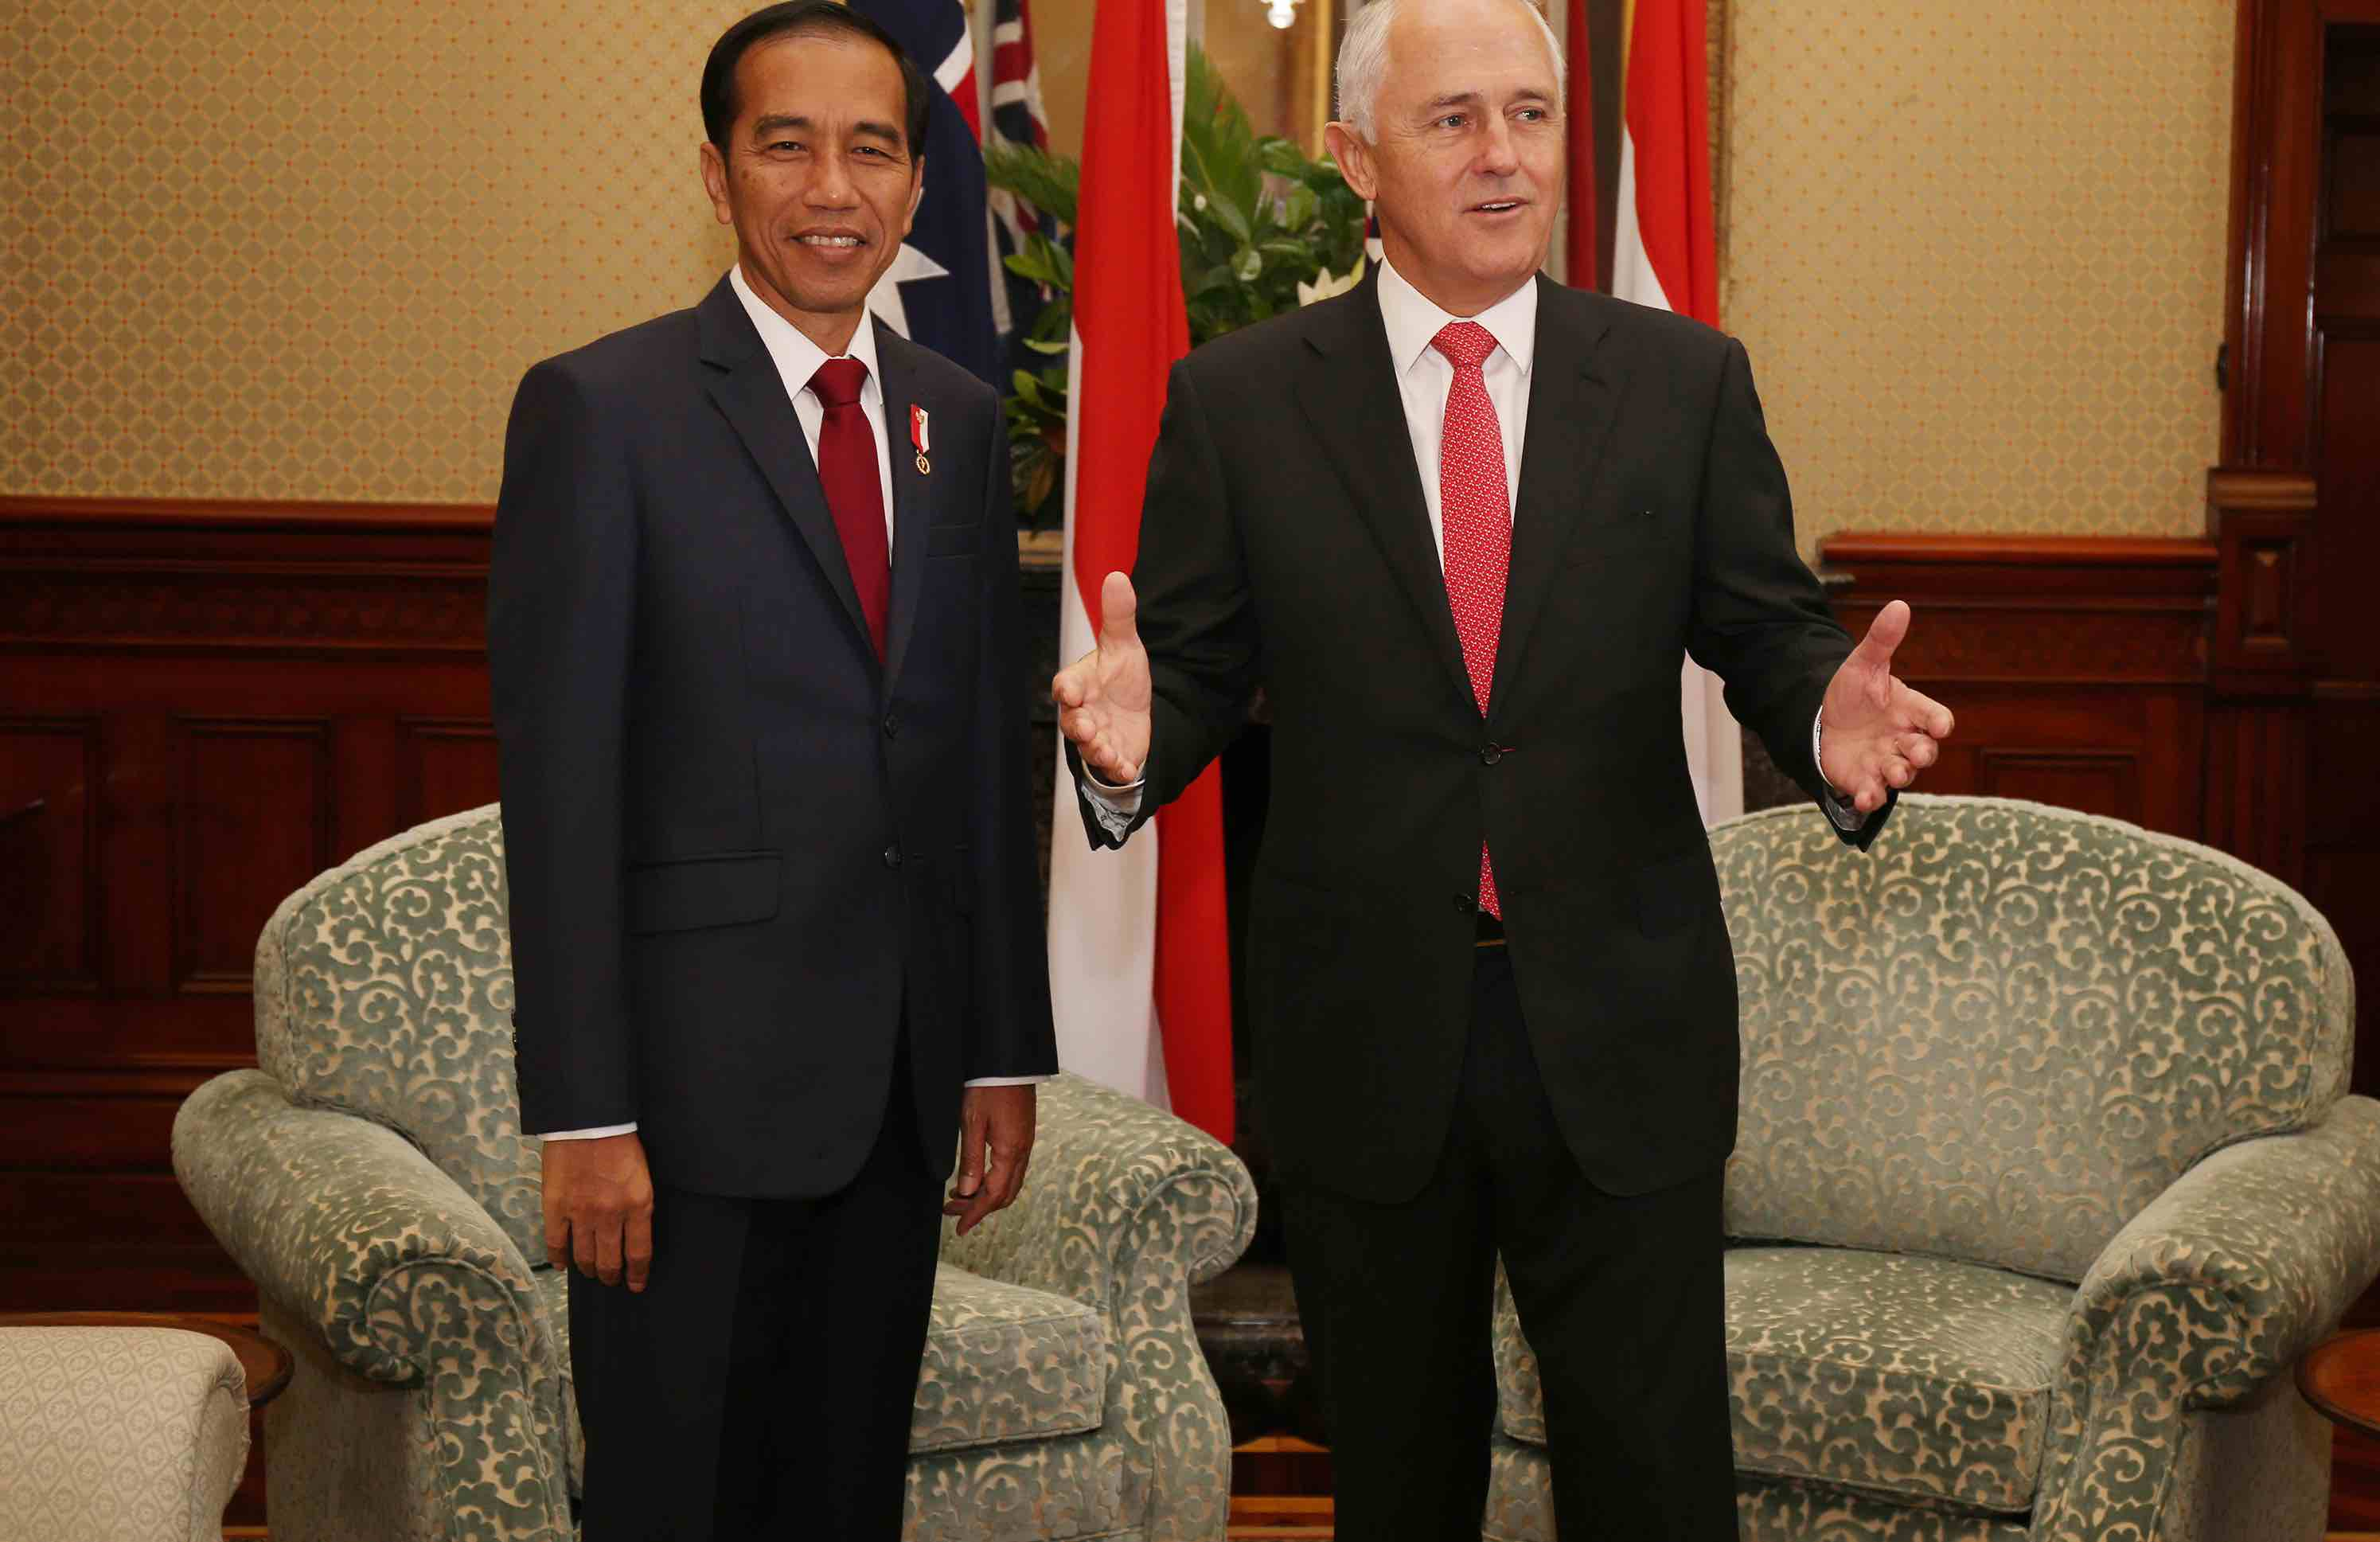 Joko Widodo and Malcolm Turnbull in Sydney in February 2017 (Photo: David Moir/Getty)